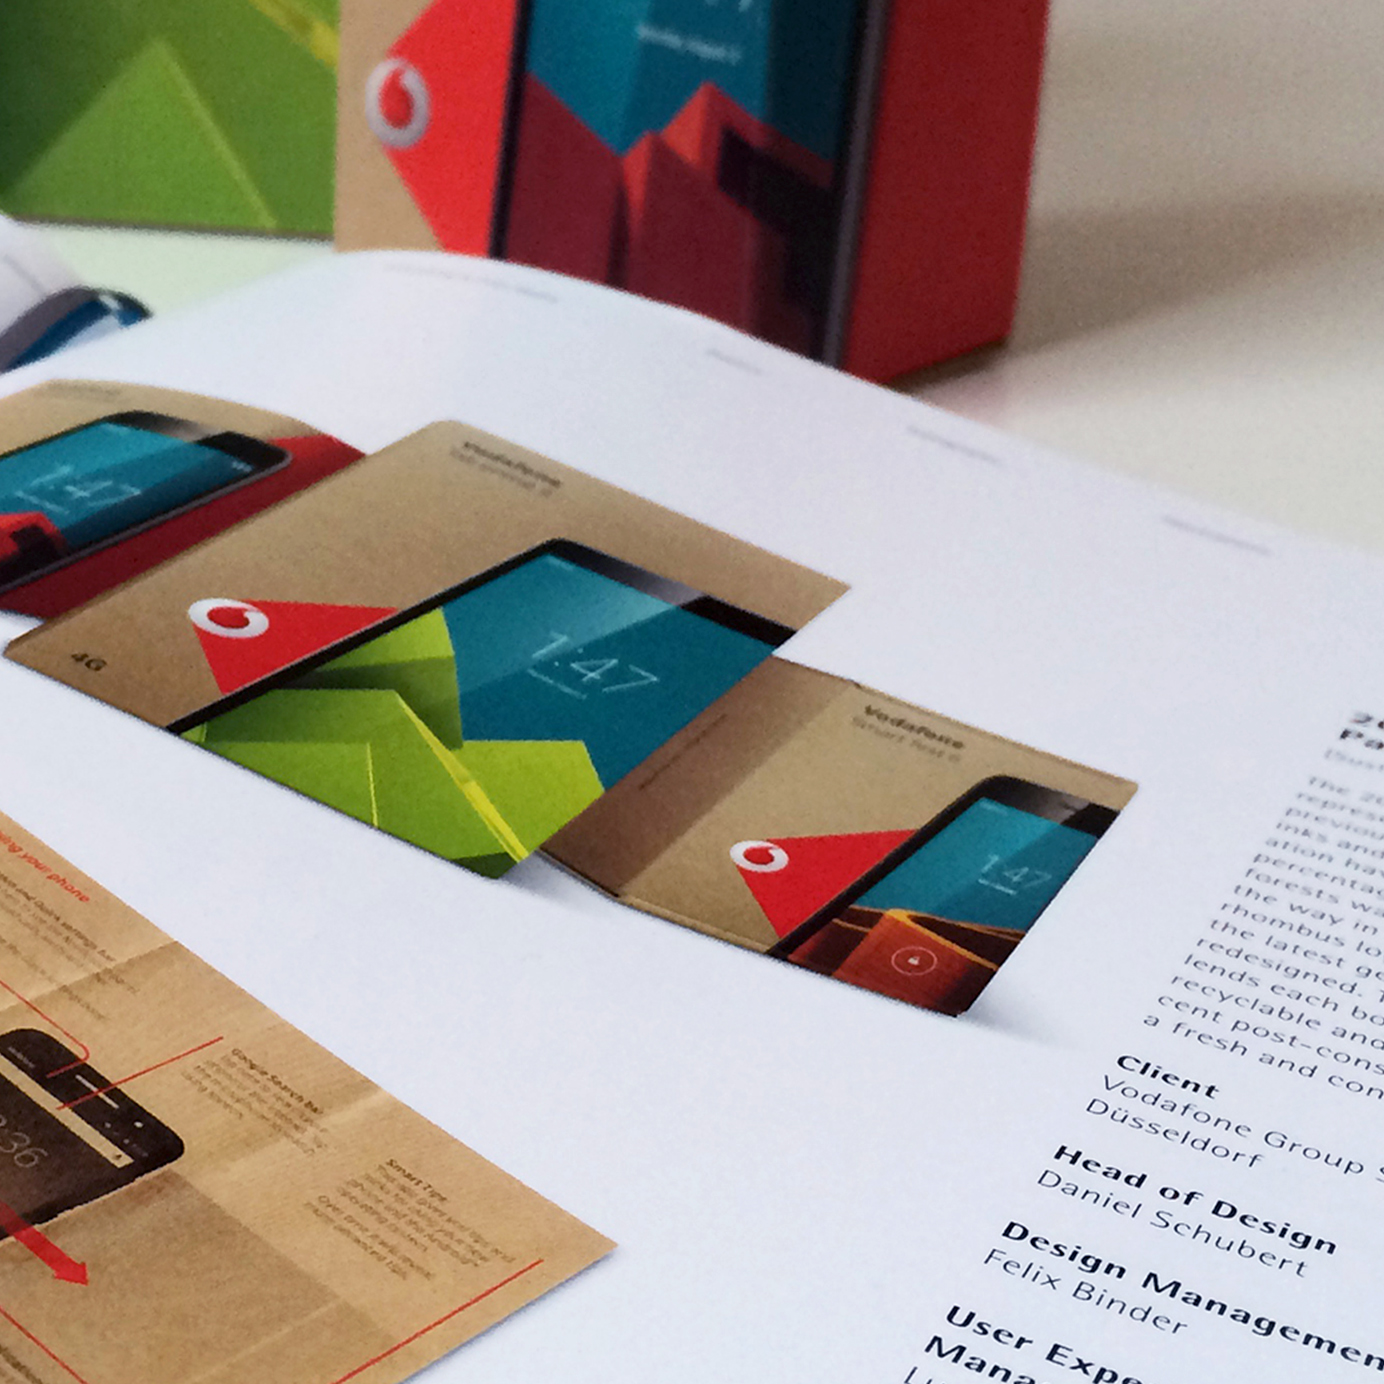 studiomem-vodafone-packaging-2-M